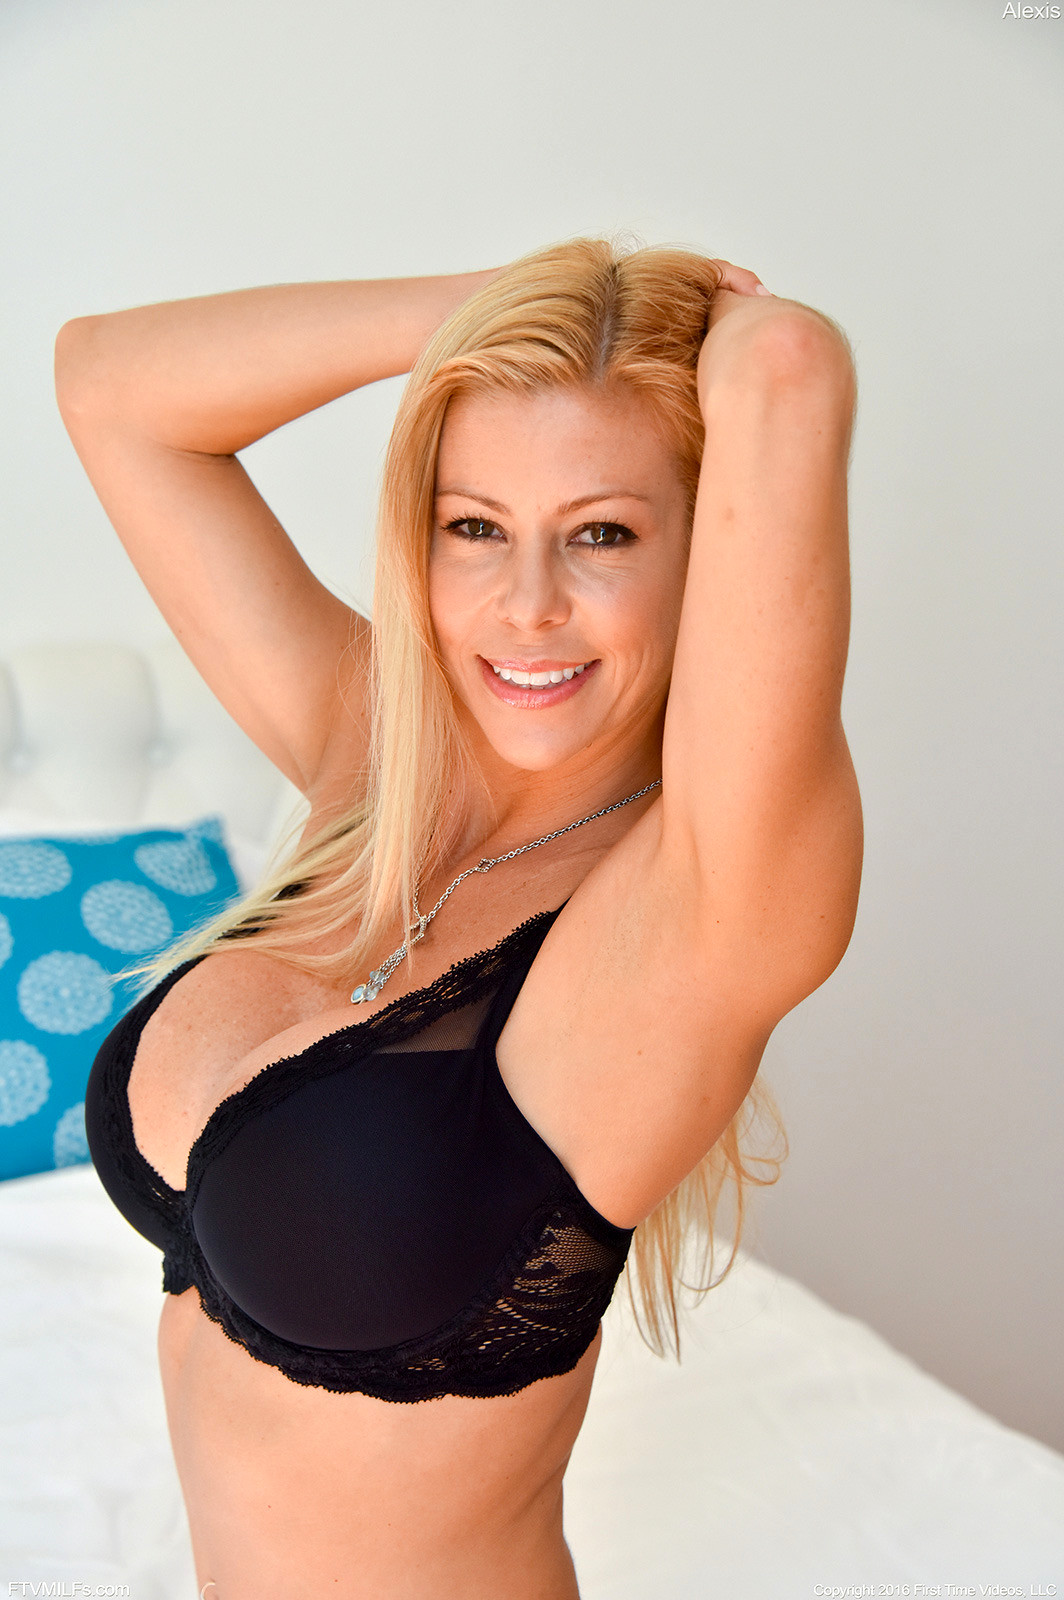 Babe Today Ftv Milfs Alexis Fawx Drity Lingerie Free Video -7216